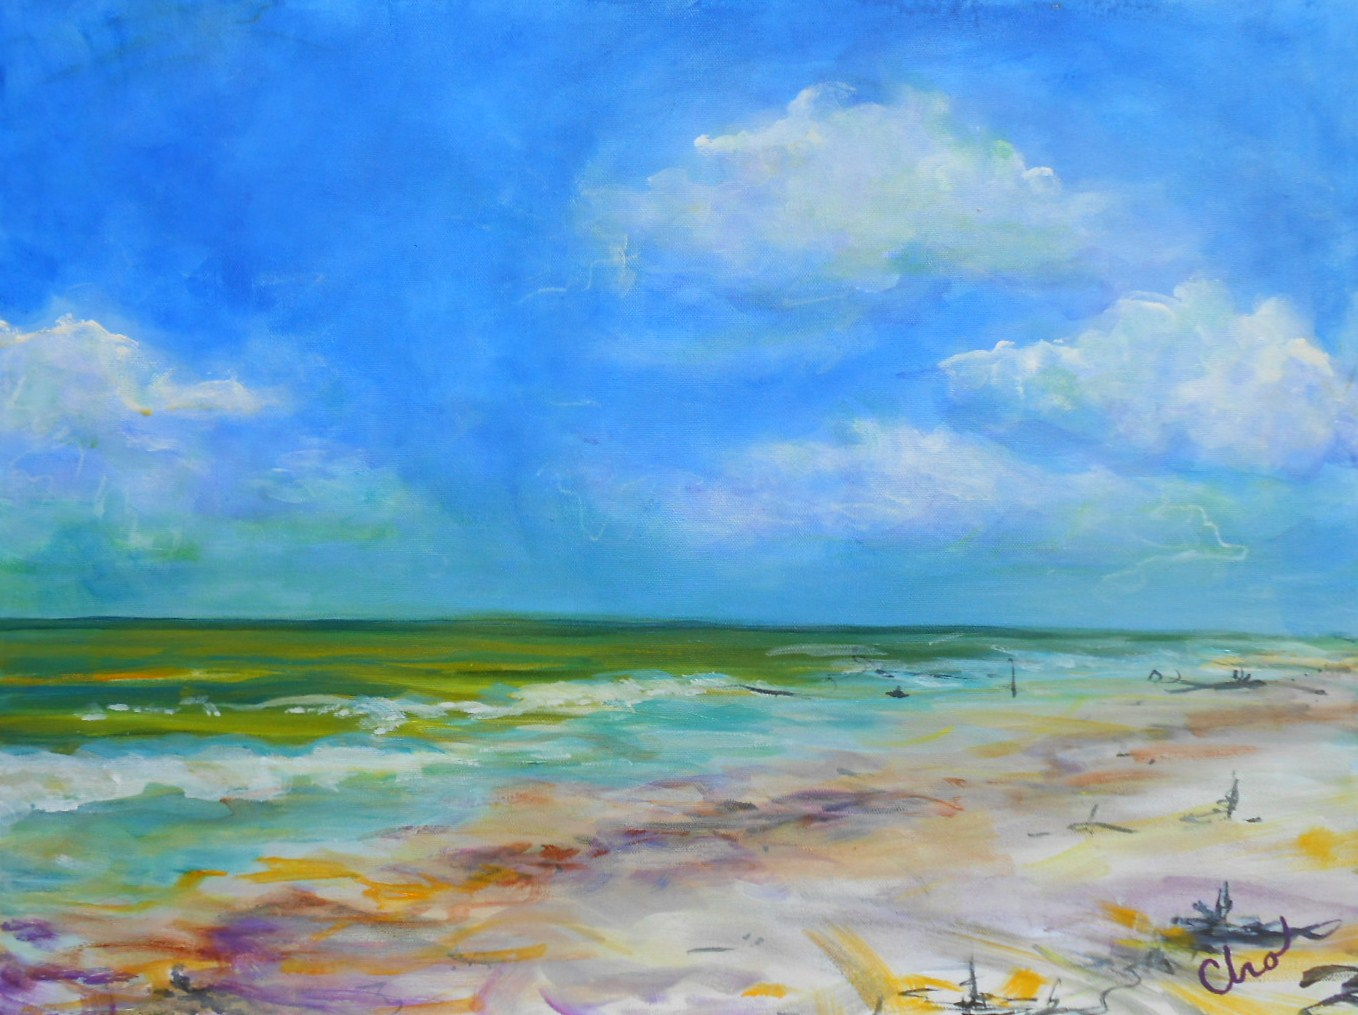 Summer Day at the Beach--June 2013 18x24